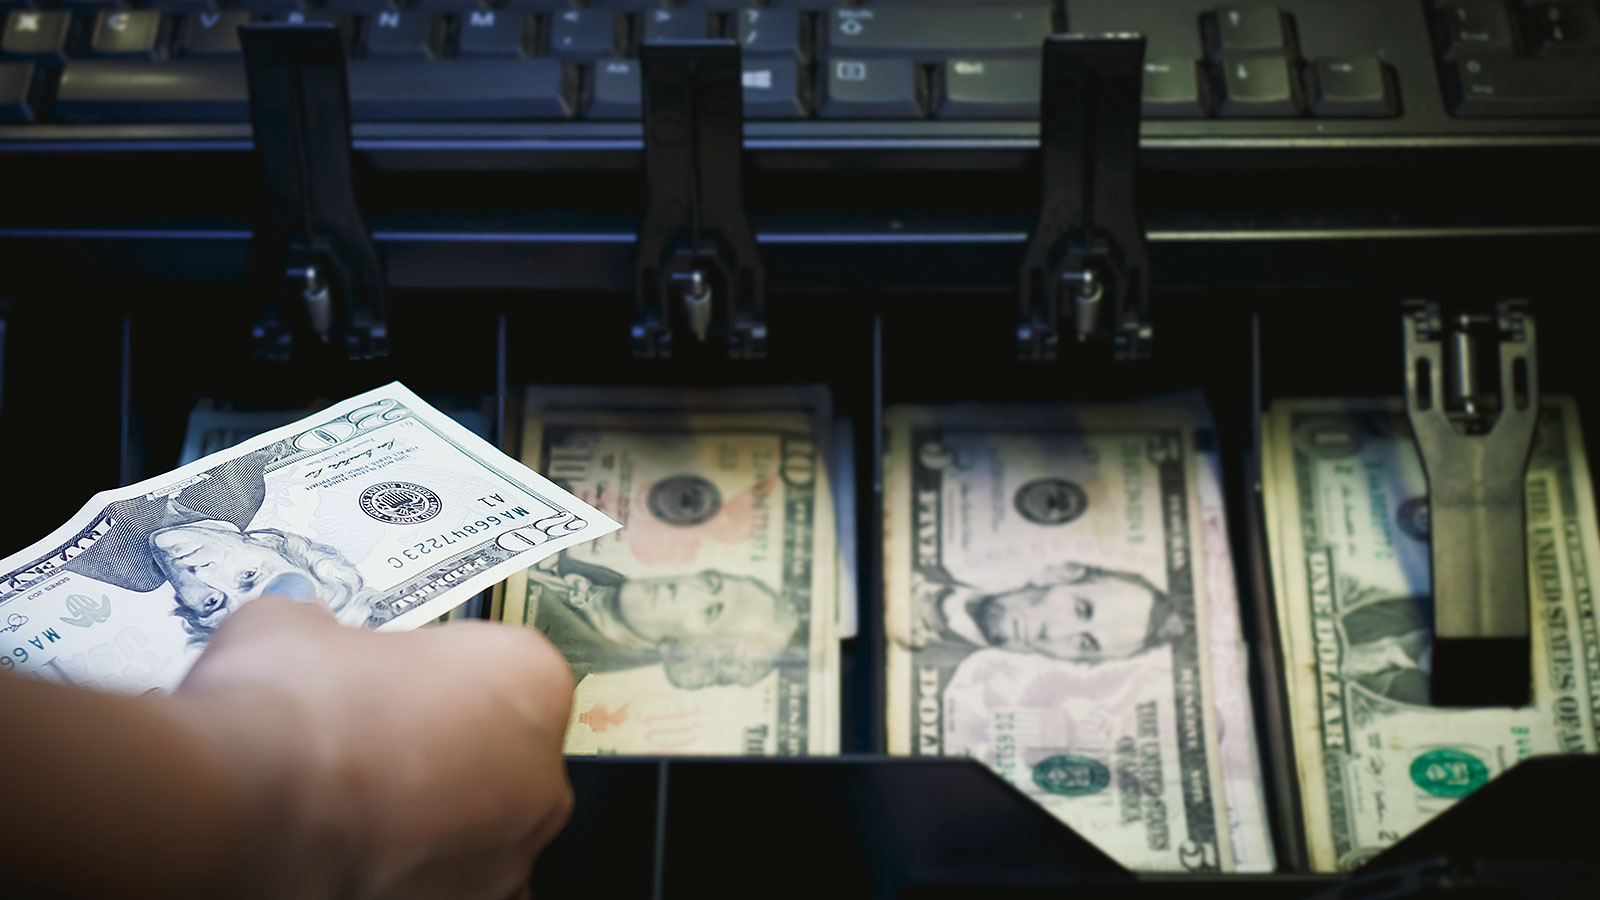 The most common ways employees get away with stealing money